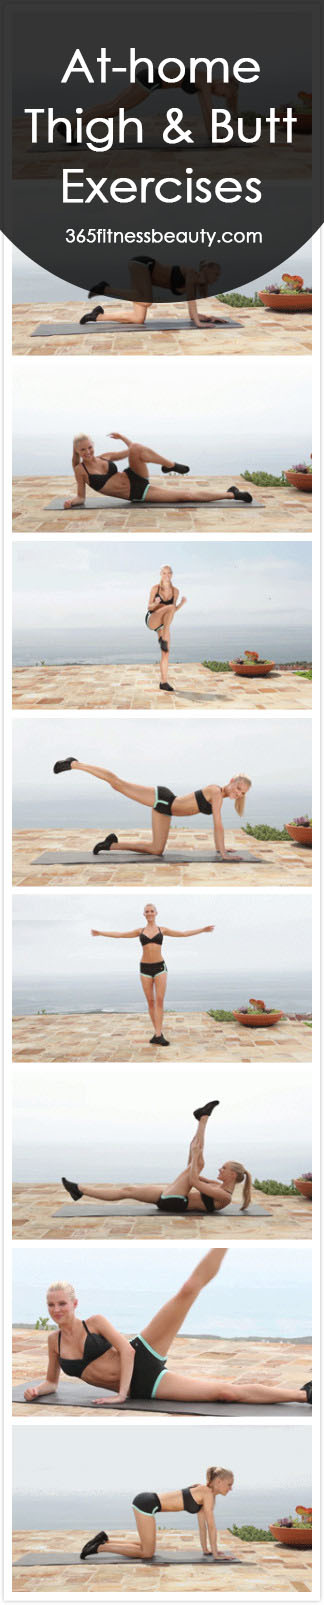 At-home Thigh & Butt Exercises